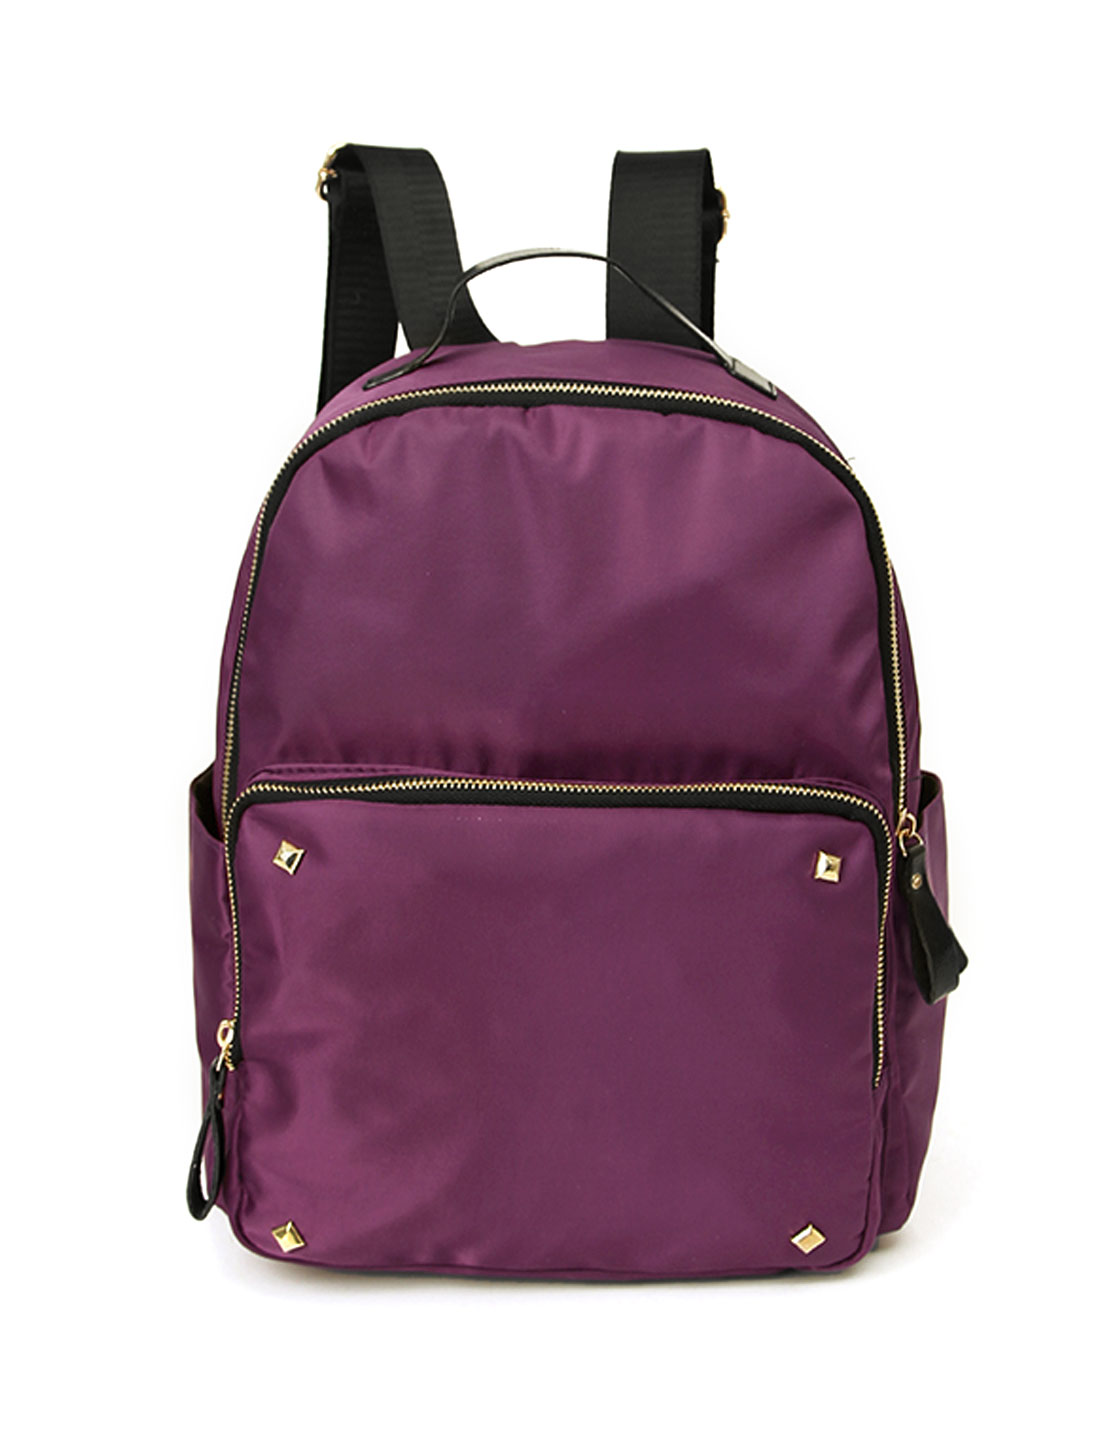 Women Studs Decor Detail Zip Closure Tarpaulins Backpack Purple